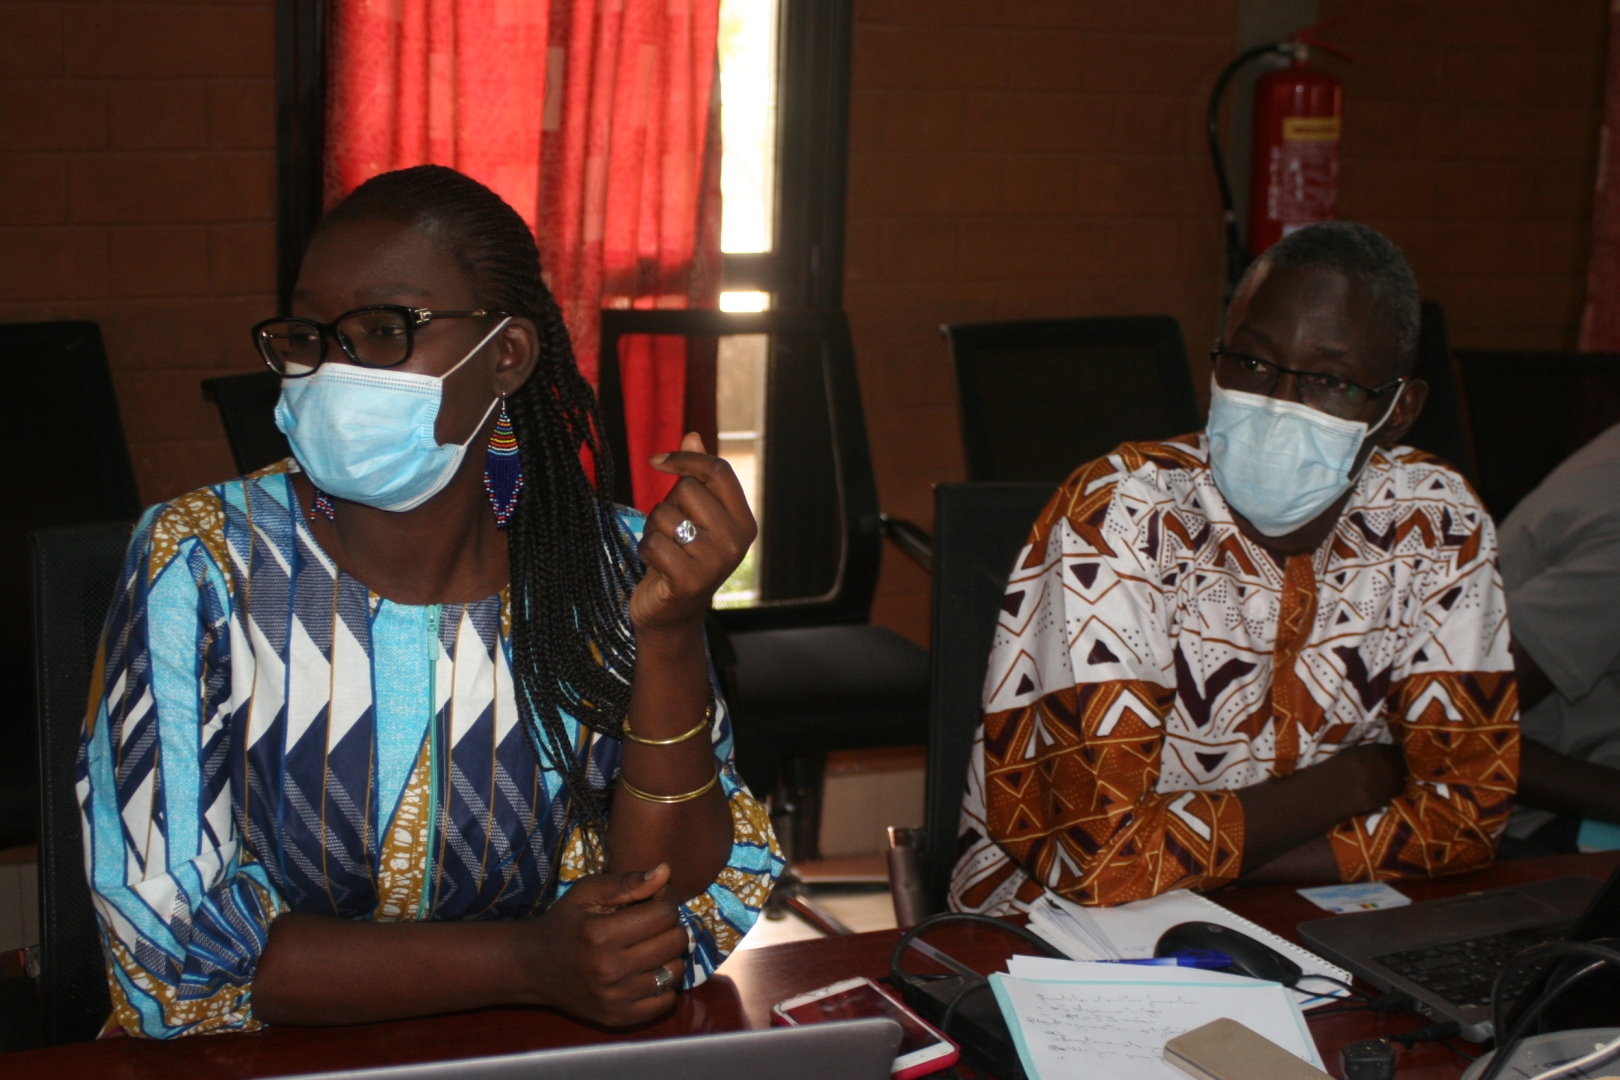 A nurse and colleague sitting at a table and wearing face masks